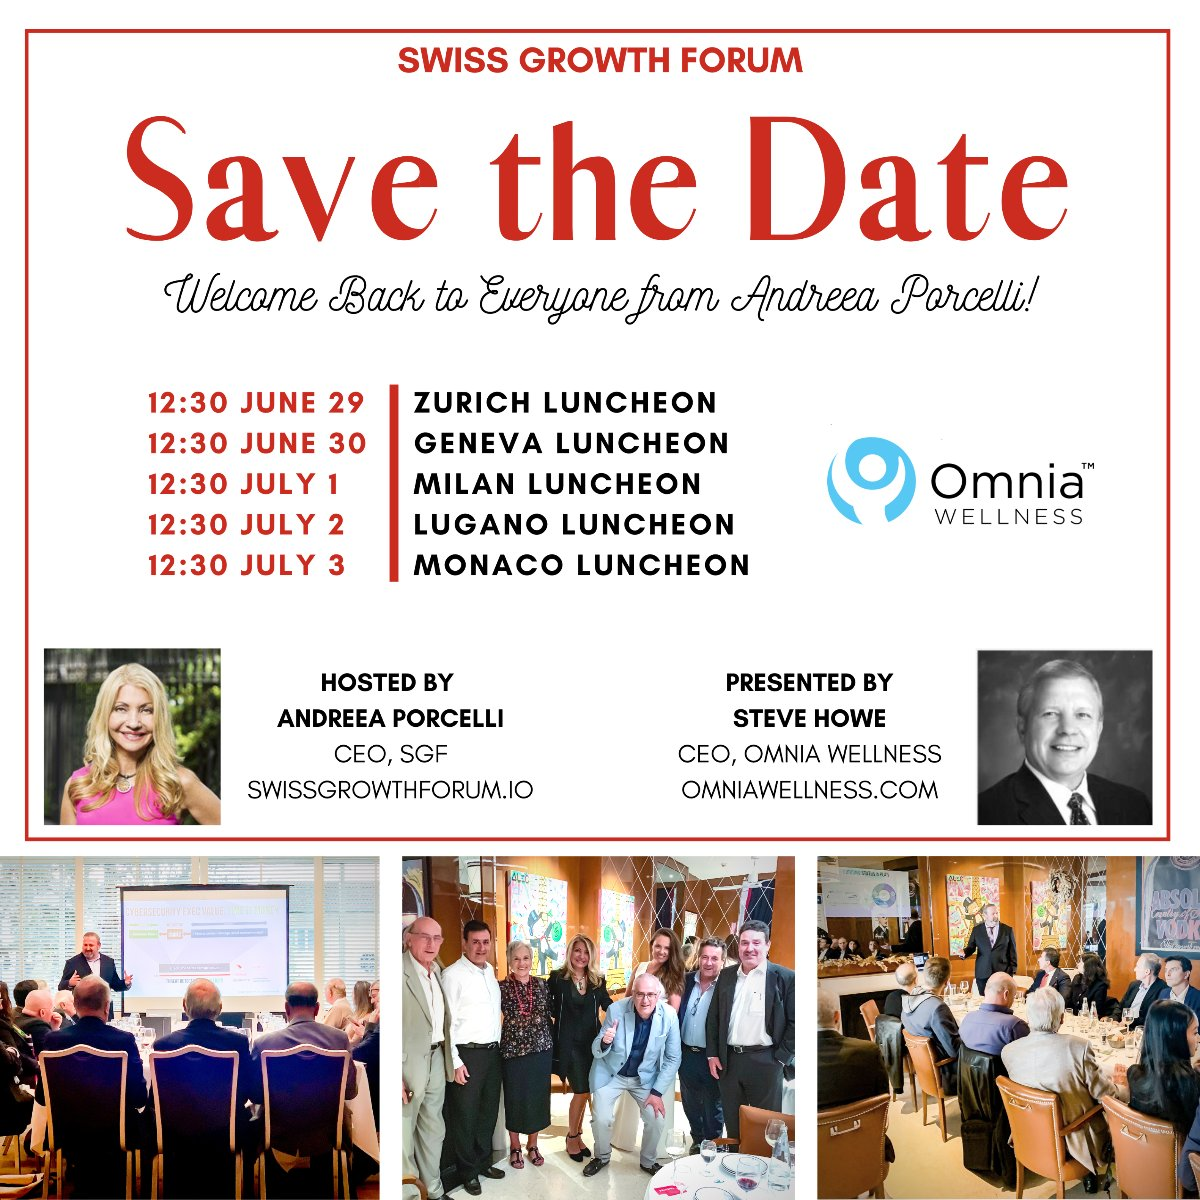 Andreea Porcelli Welcomes you Back to the SGF Roadshow for Omnia Wellness June 29th through July 2nd!  https://t.co/9nrVuqKPxd  #NewYork #Covid_19 #QuarantineLife #business #lockdown #updates #cybersecurity #investing #stocks  #coronavirus #nasdaq #GRAMMYs #DDoS #Nintendo https://t.co/3Avwt5NkYj